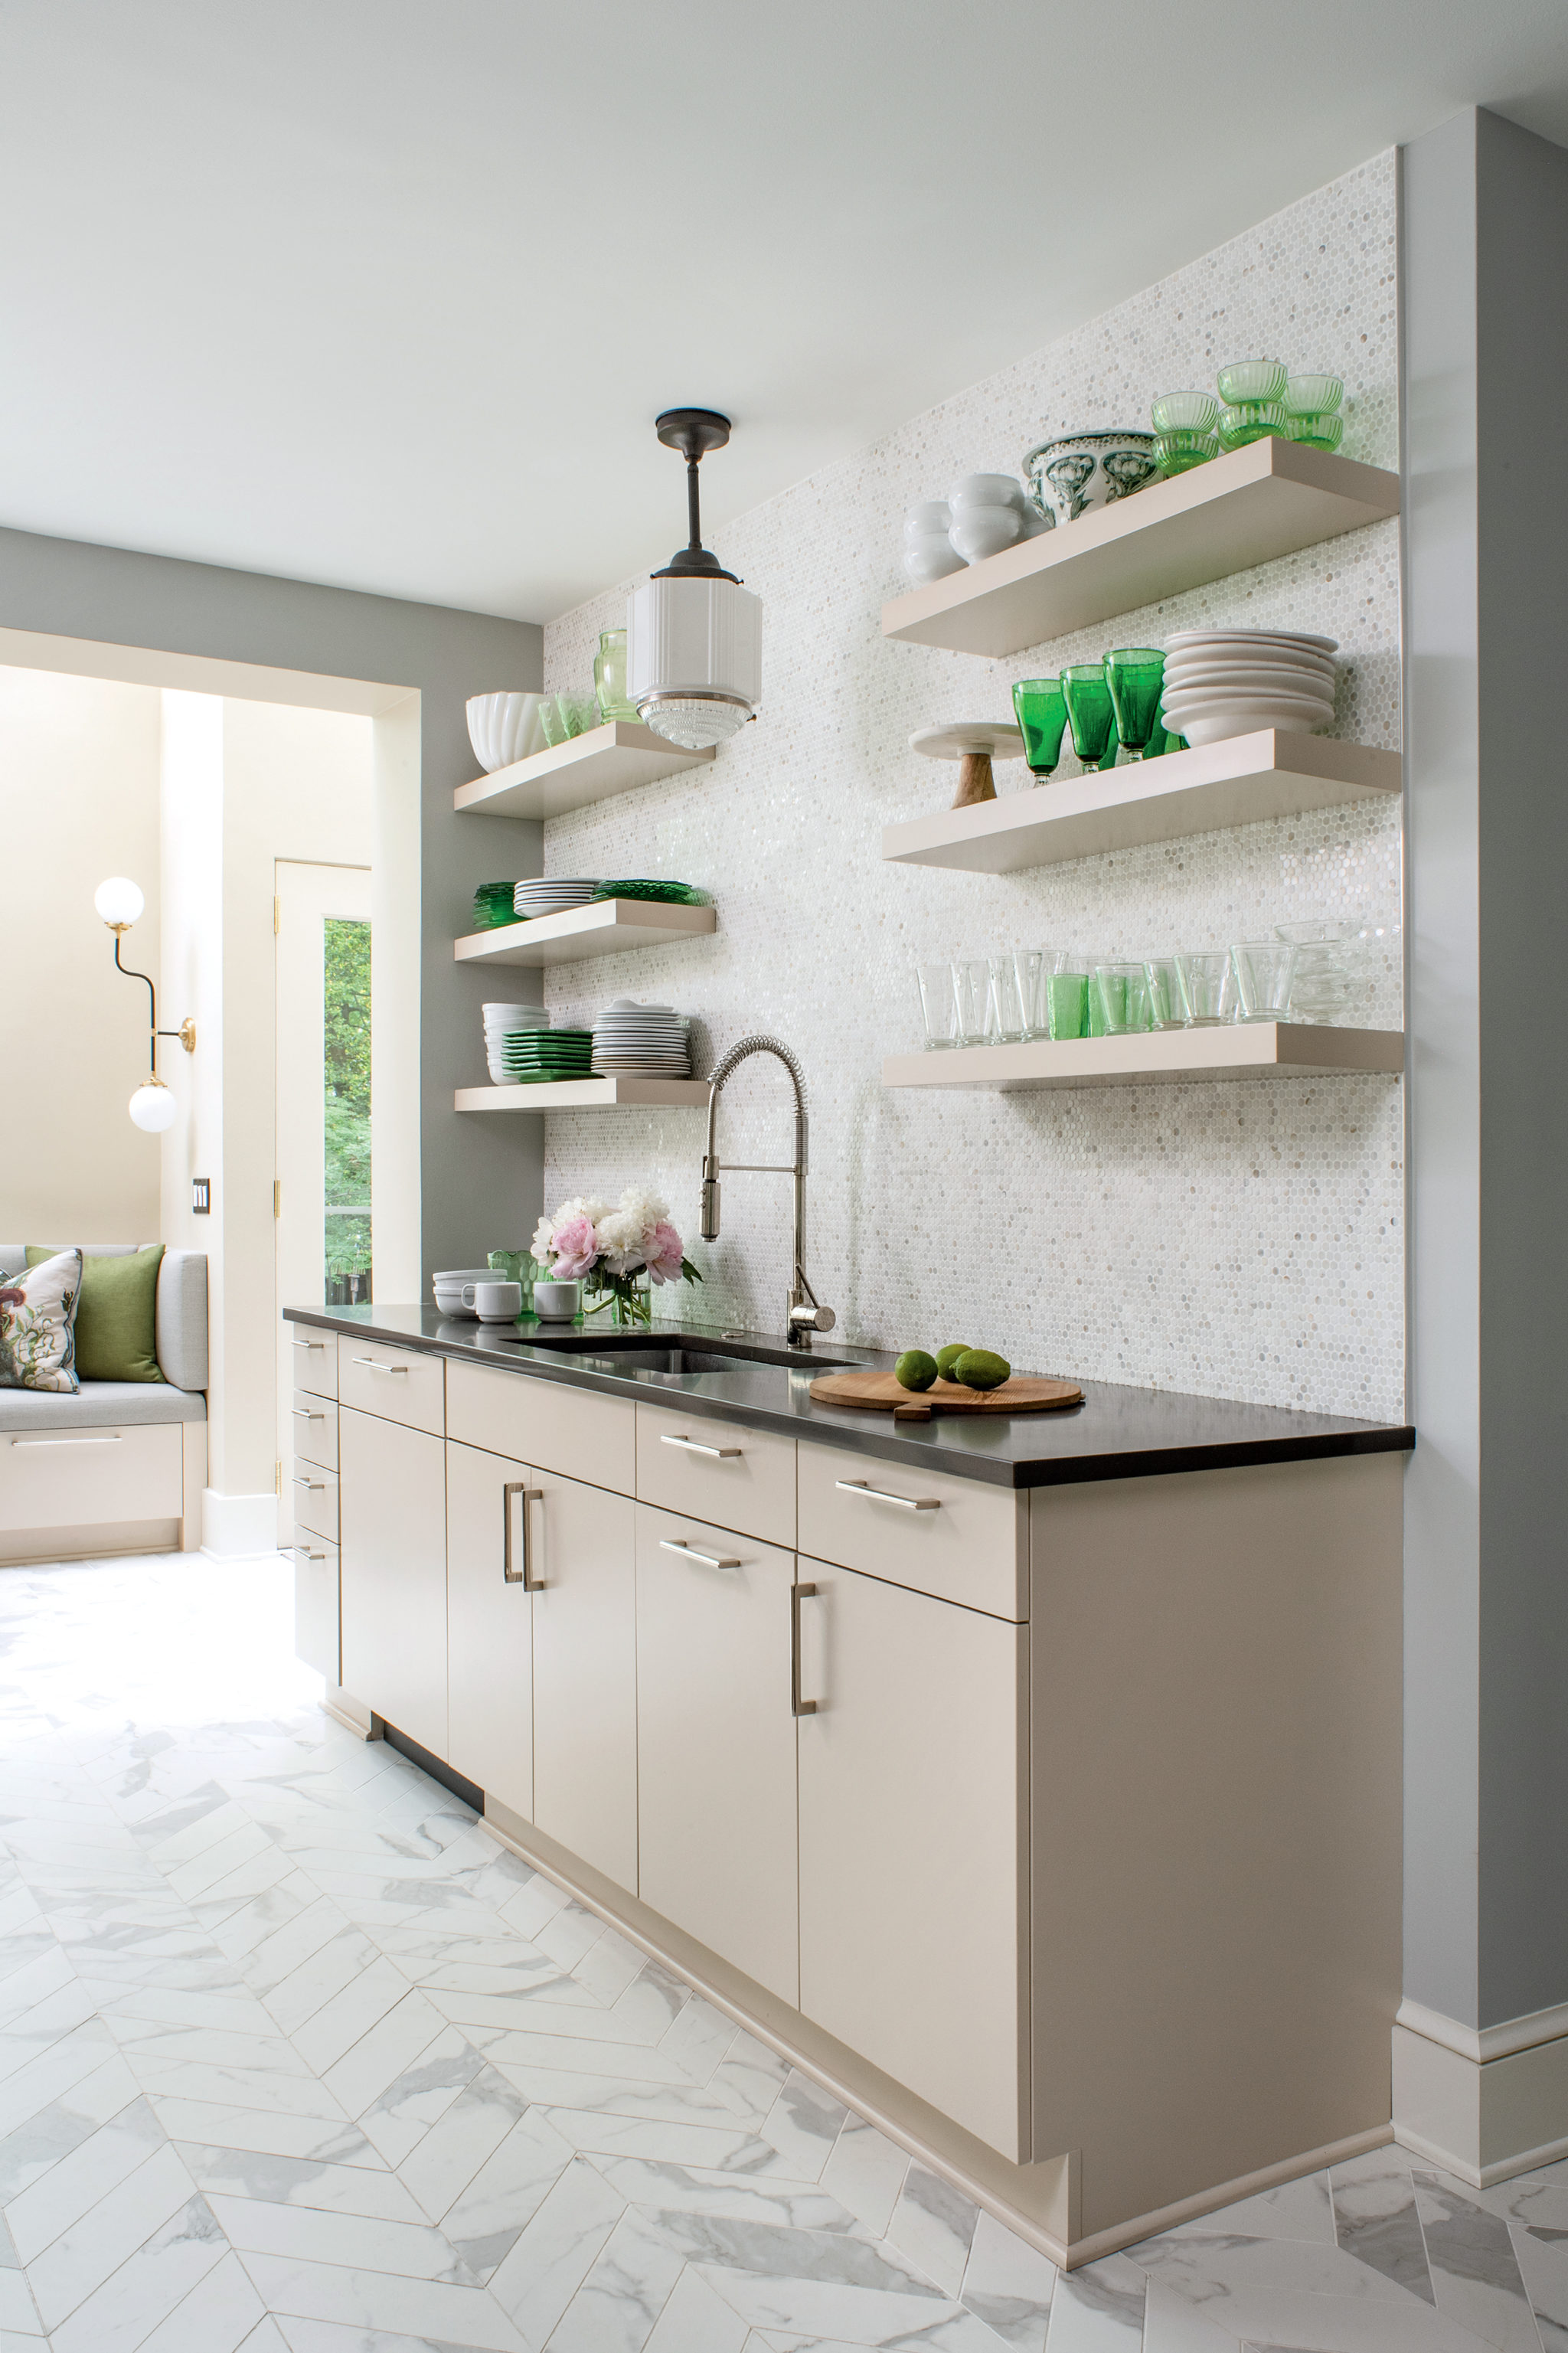 No Detail Was Spared In This Art Deco Inspired Kitchen